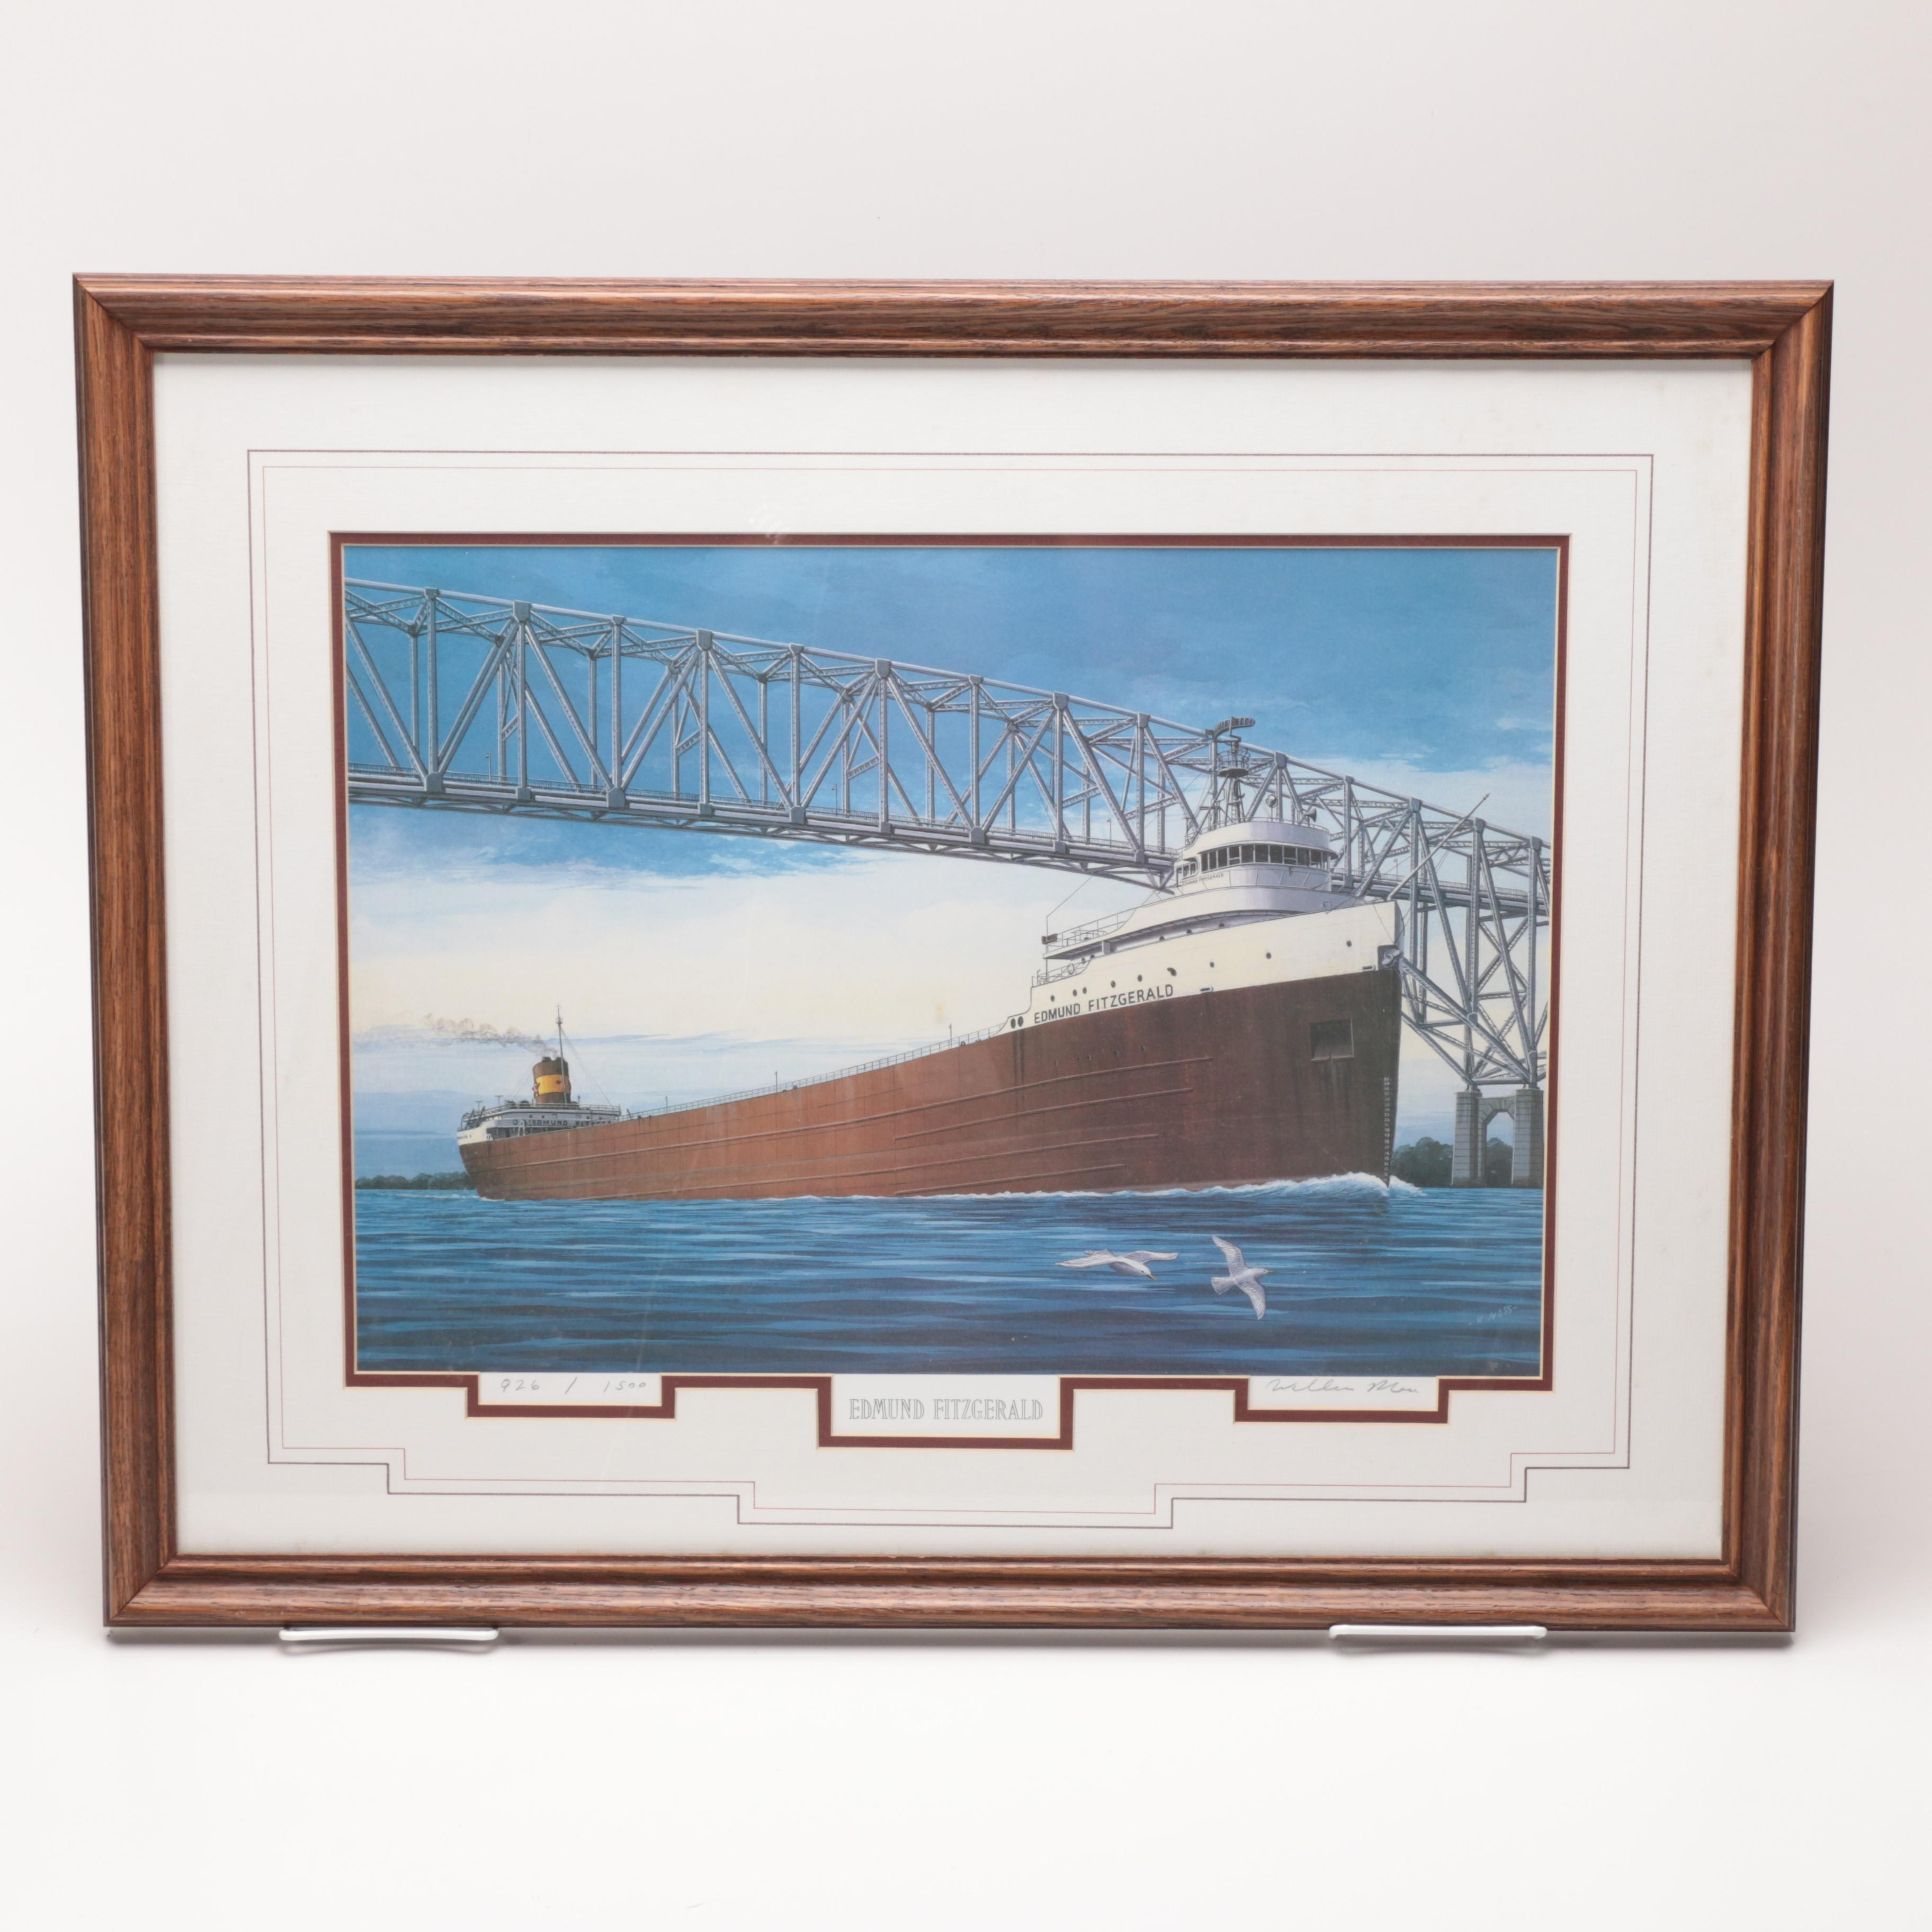 """Limited Edition Offset Lithograph After William Moss """"Edmund Fitzgerald"""""""